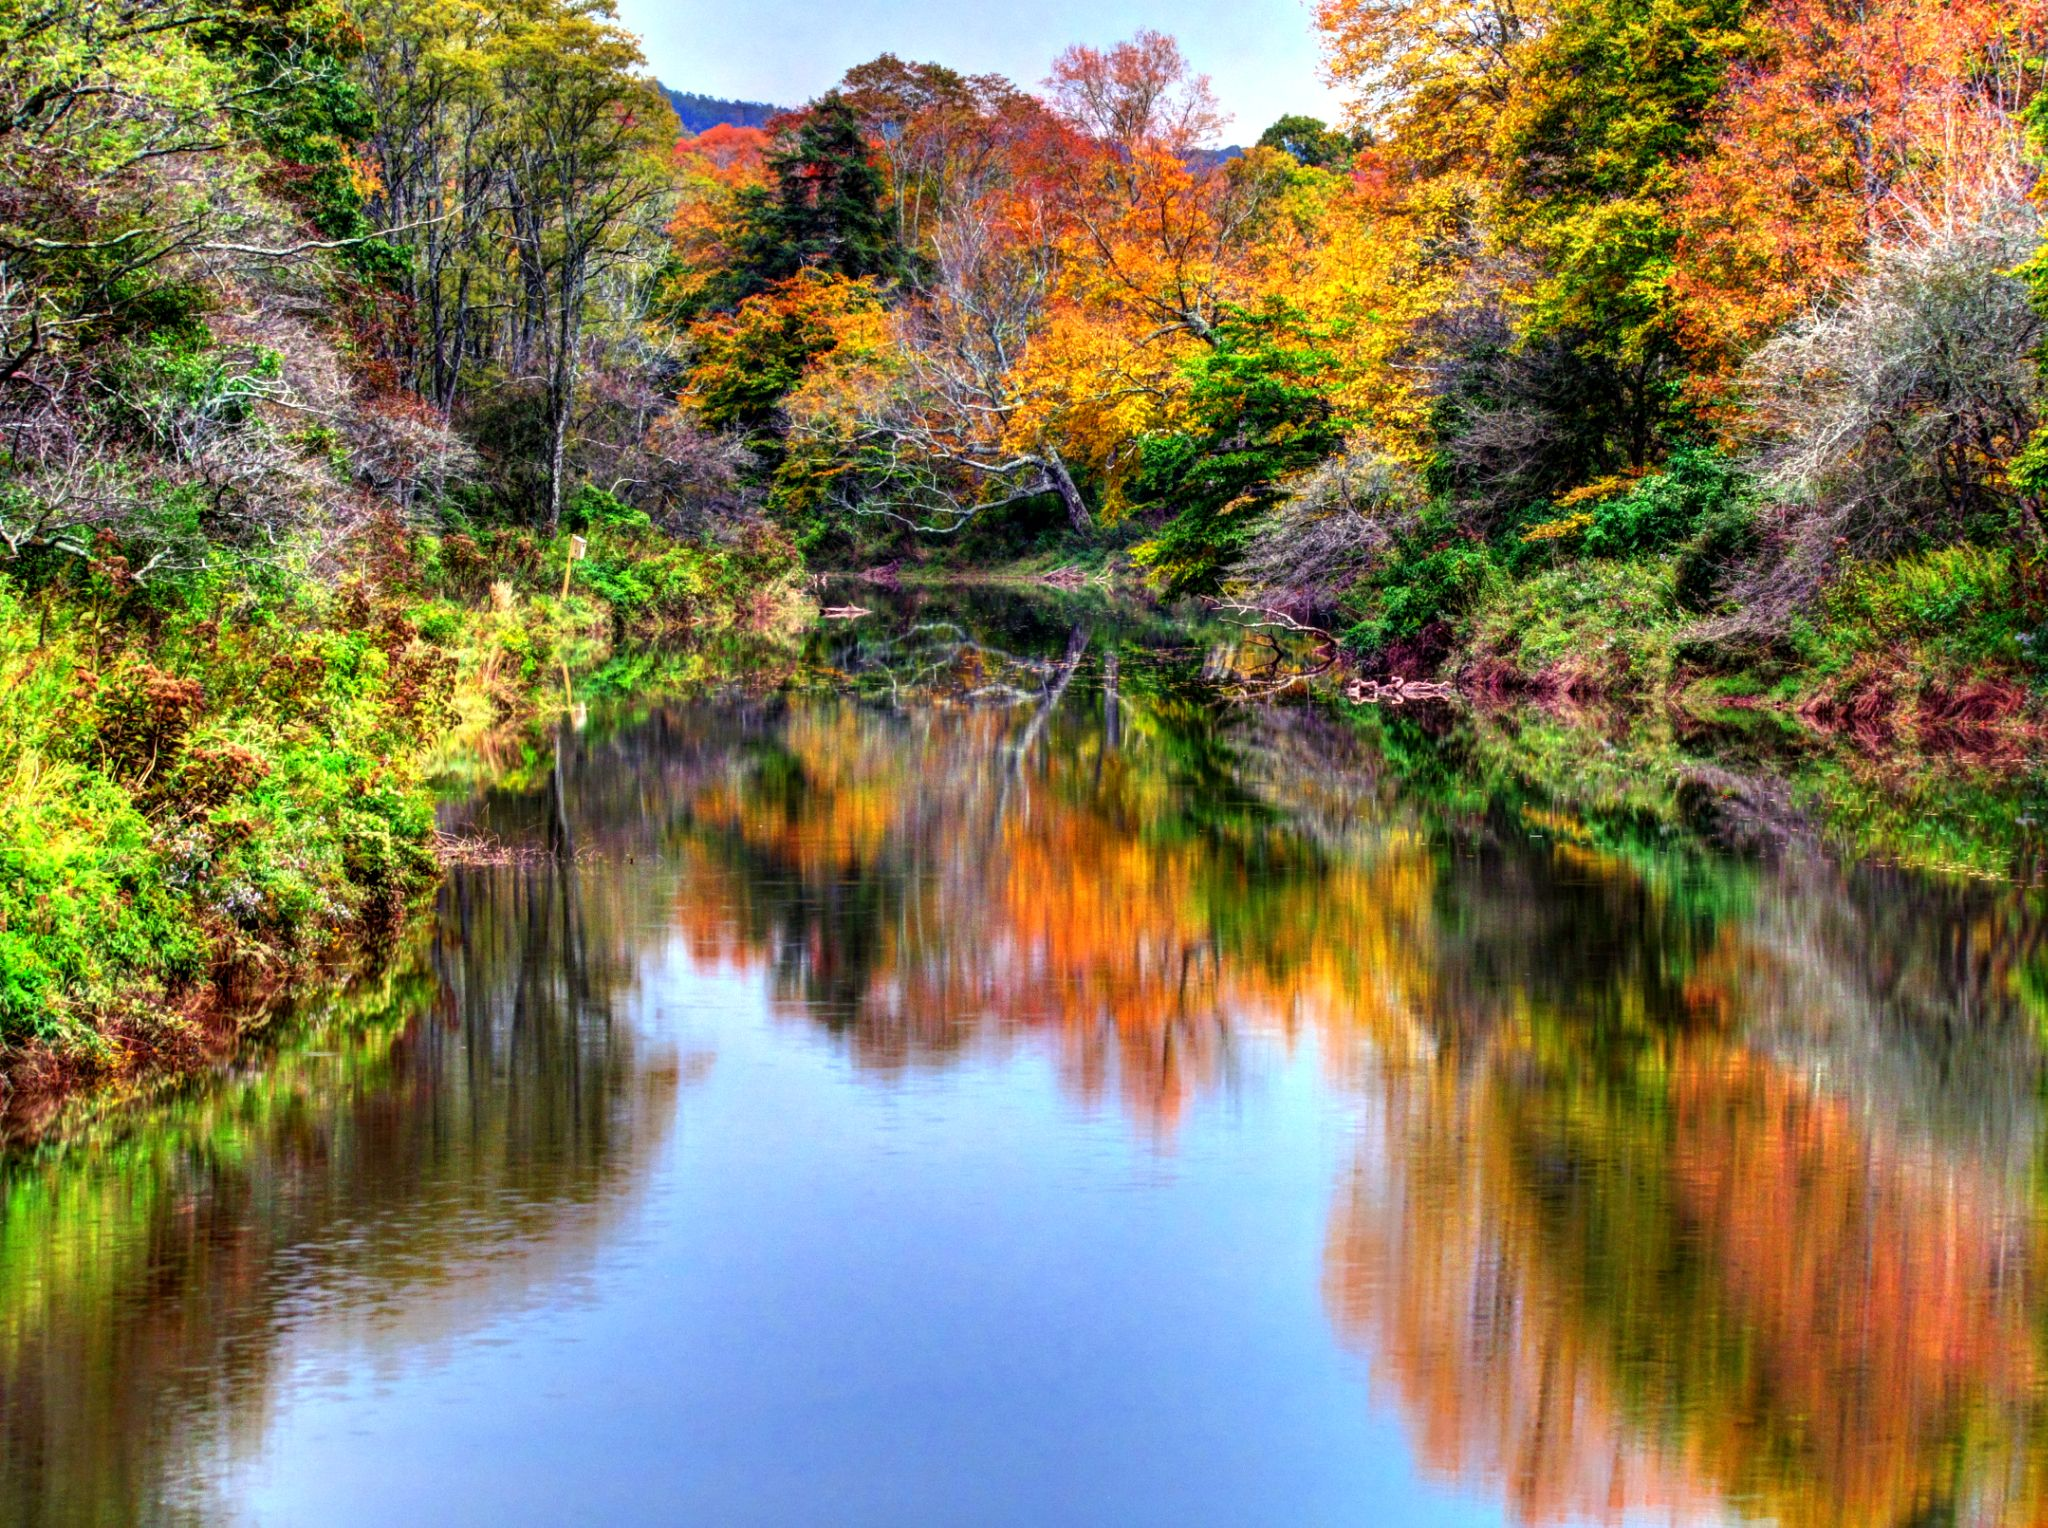 Autumn on Williams River by Michael Lough